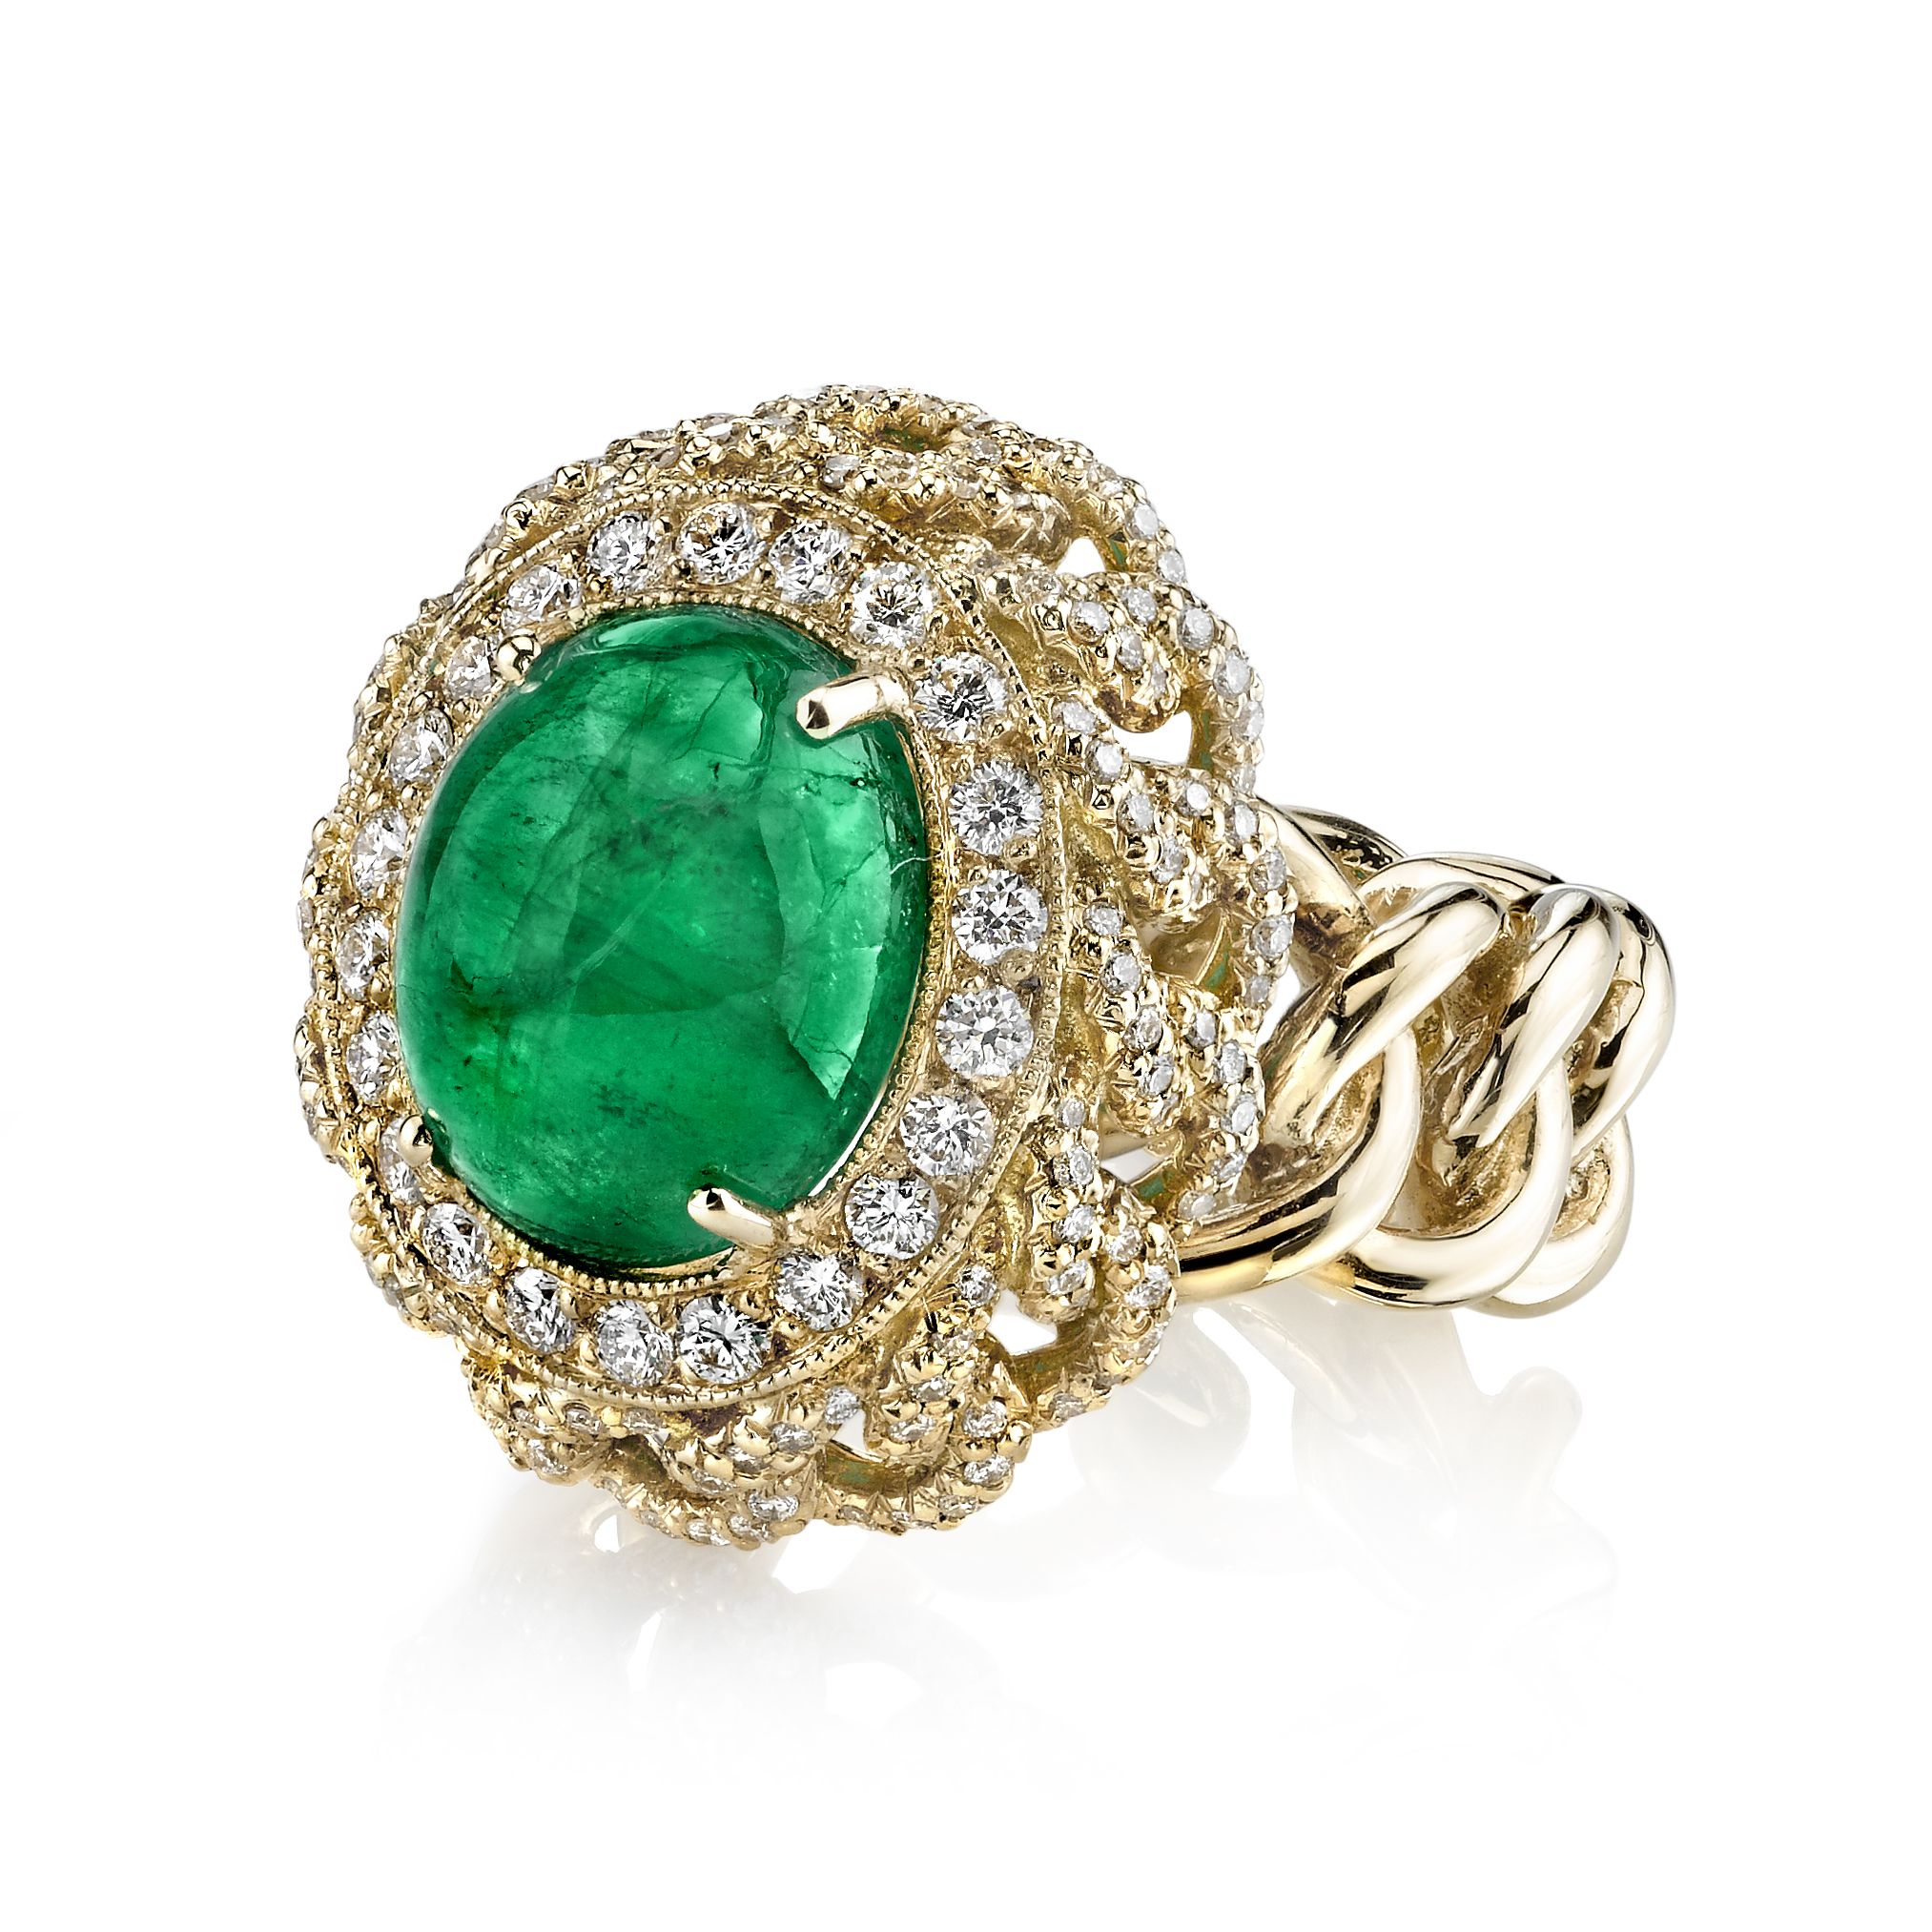 18k gold and diamond emerald chain ring by Erica Courtney®